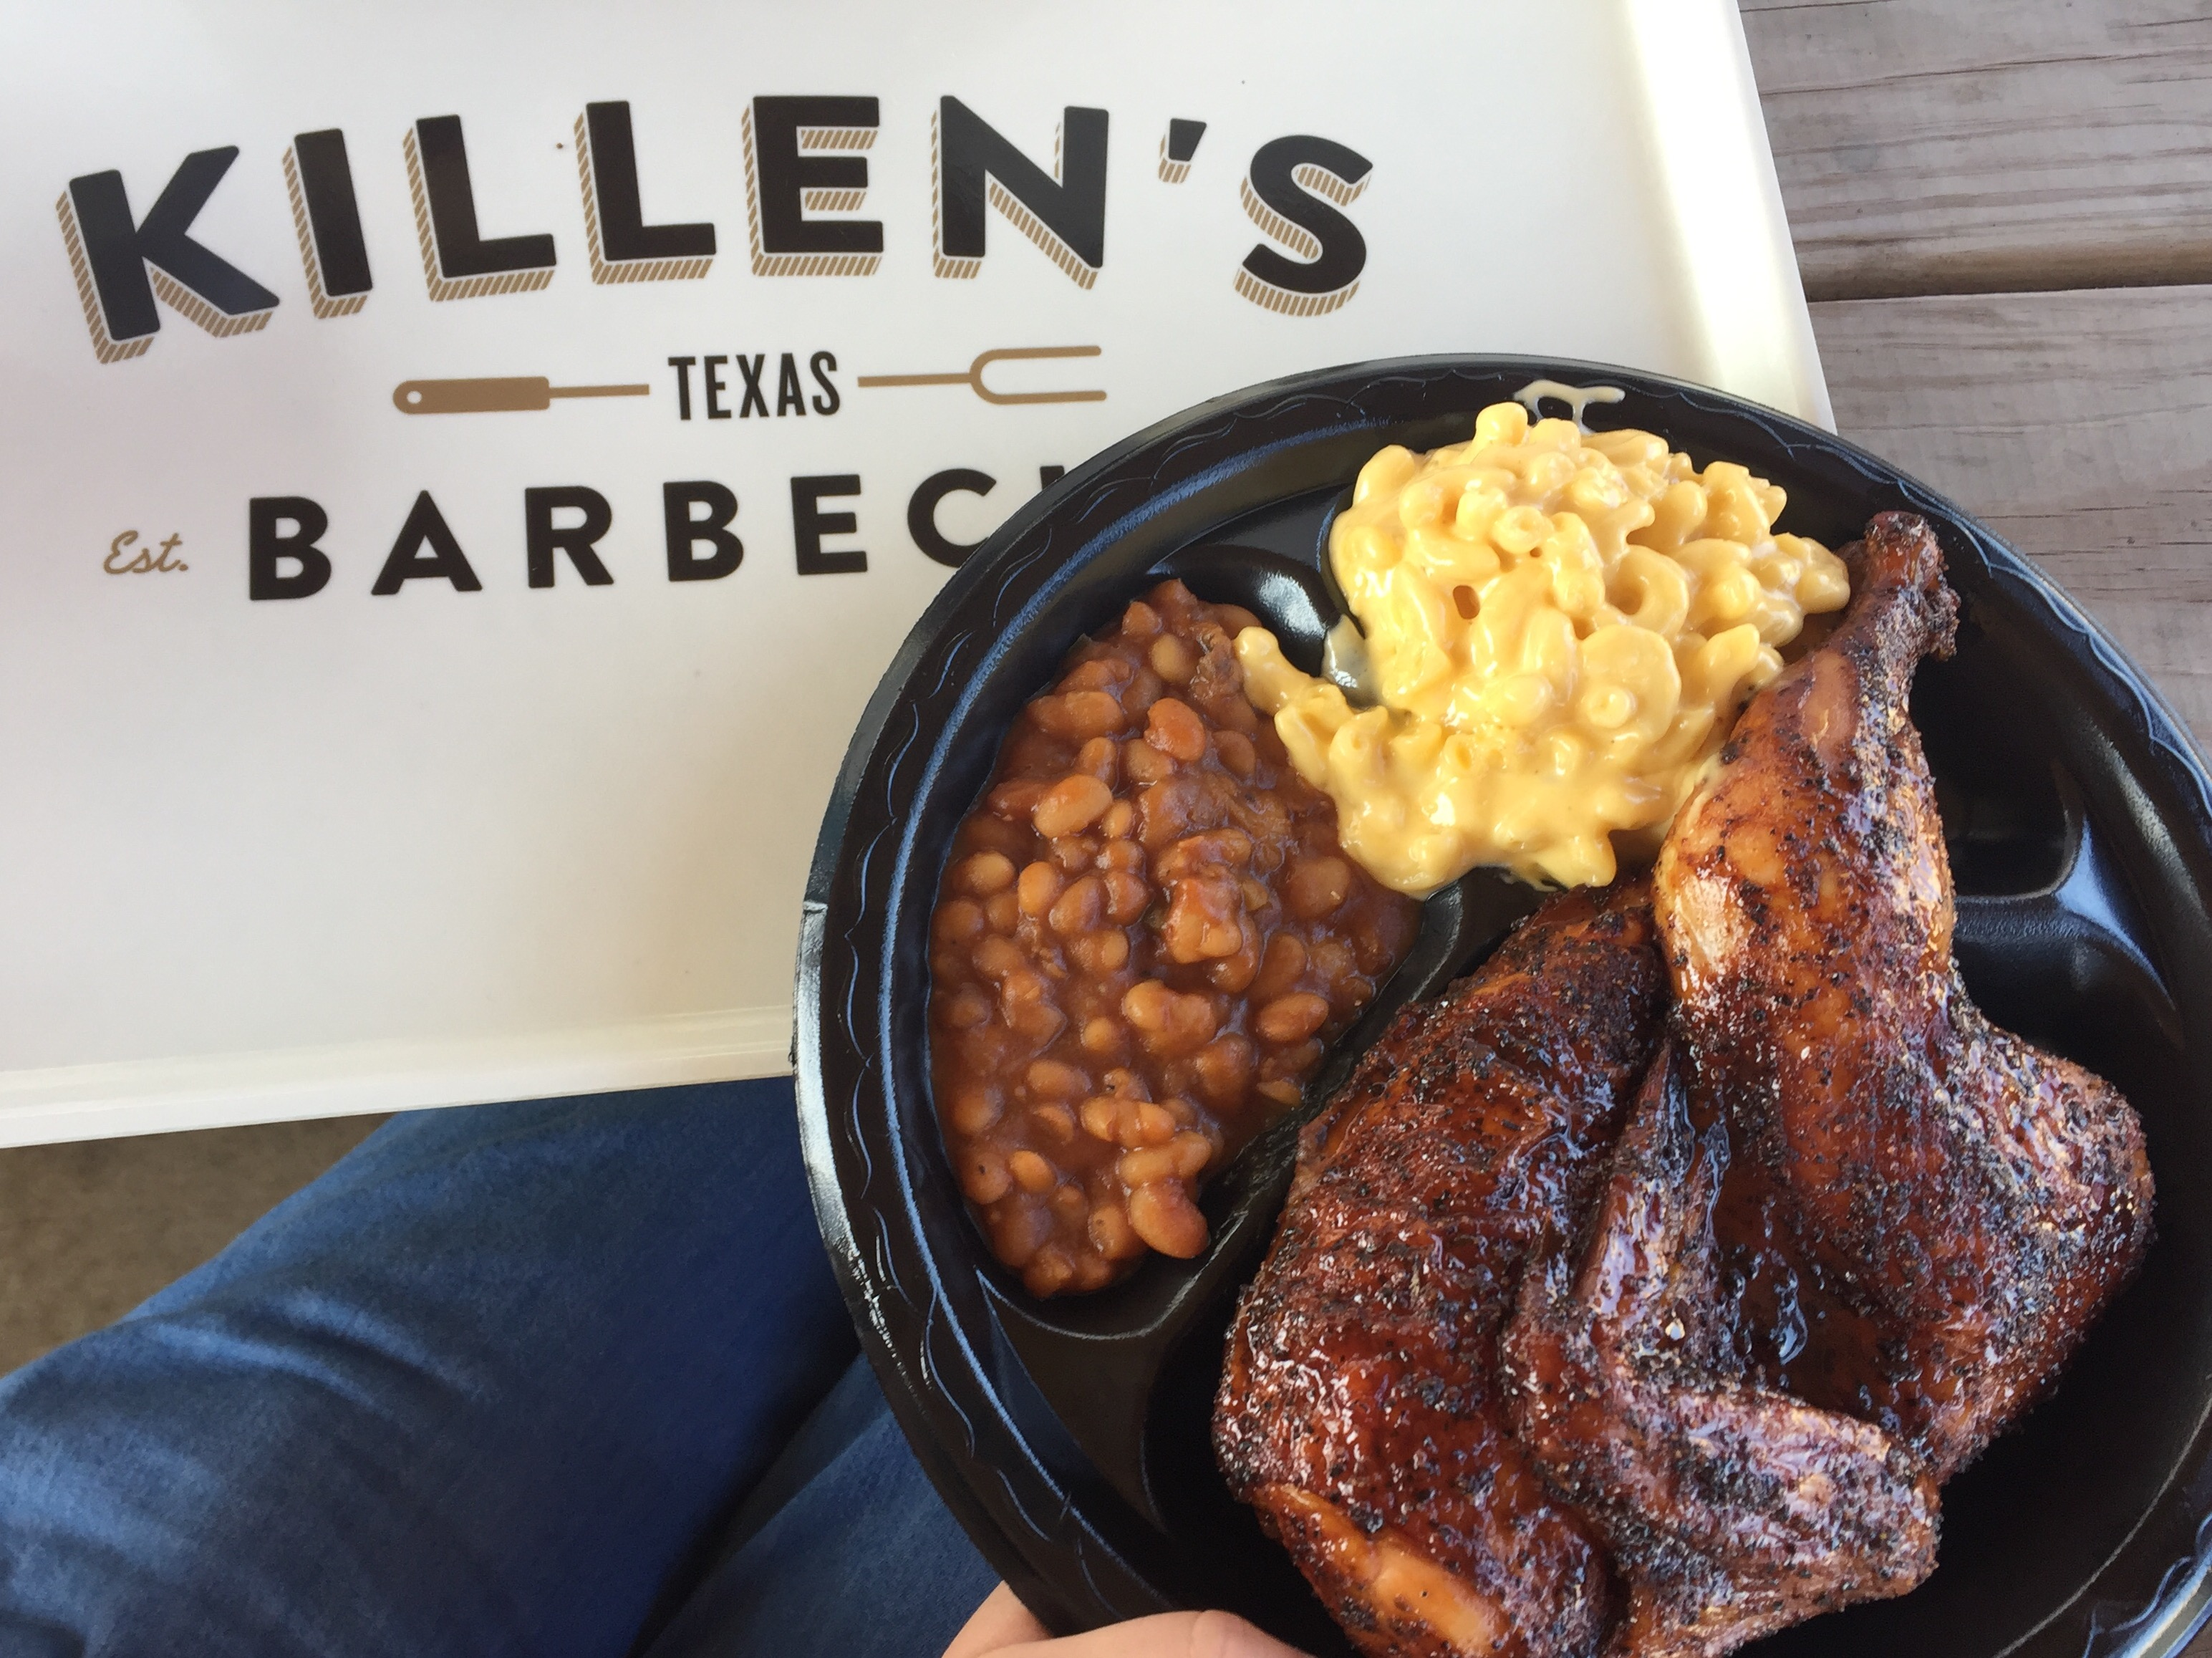 A delicious lunch from Killen's Barbecue!  On a scale of 1-10, I give this BBQ an 11!  Easily the best I've had since being in Houston.